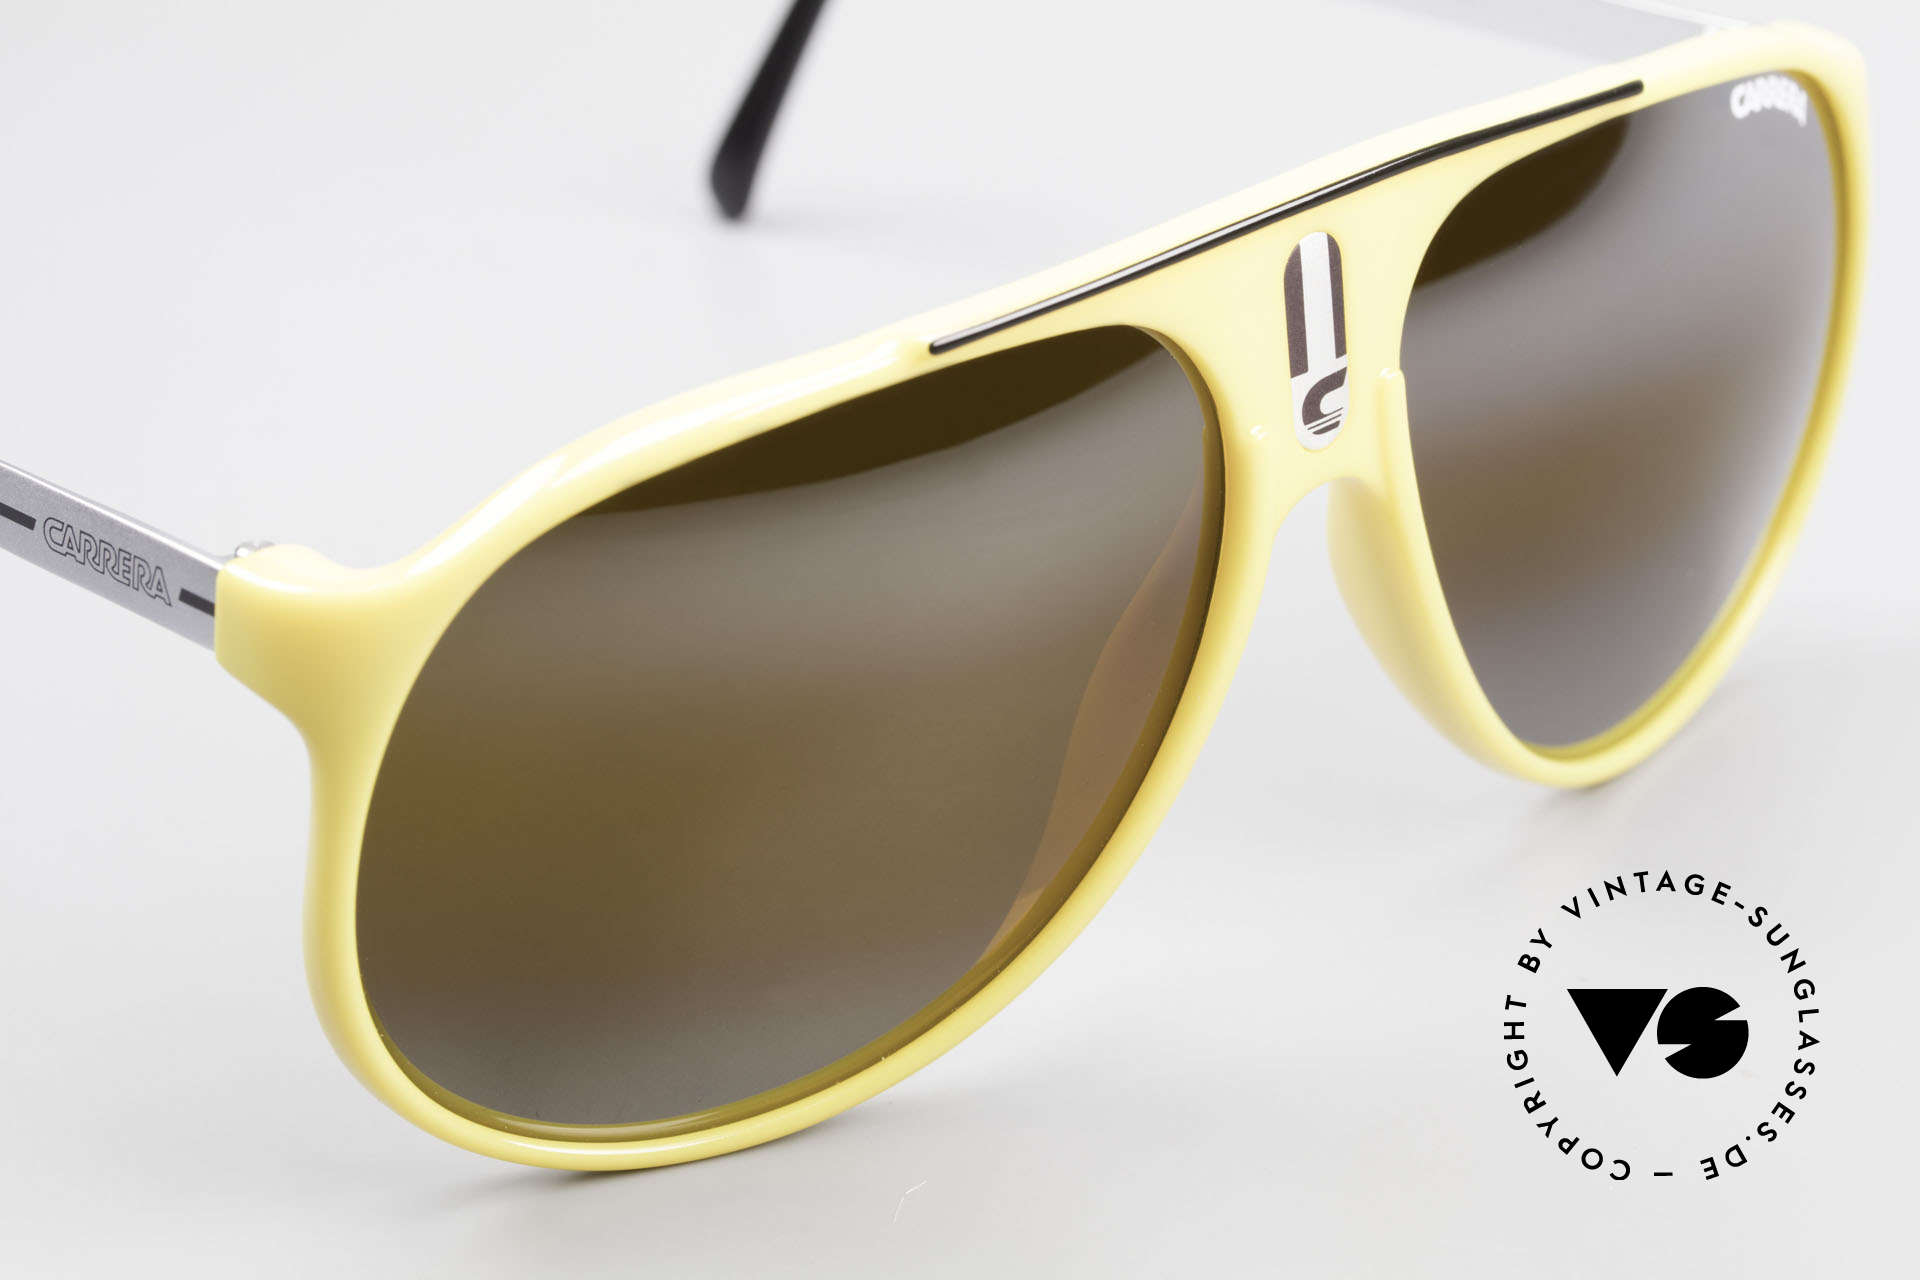 Carrera 5424 Rare Mirrored 80's Sunglasses, new old stock (like all our VINTAGE Carrera shades), Made for Men